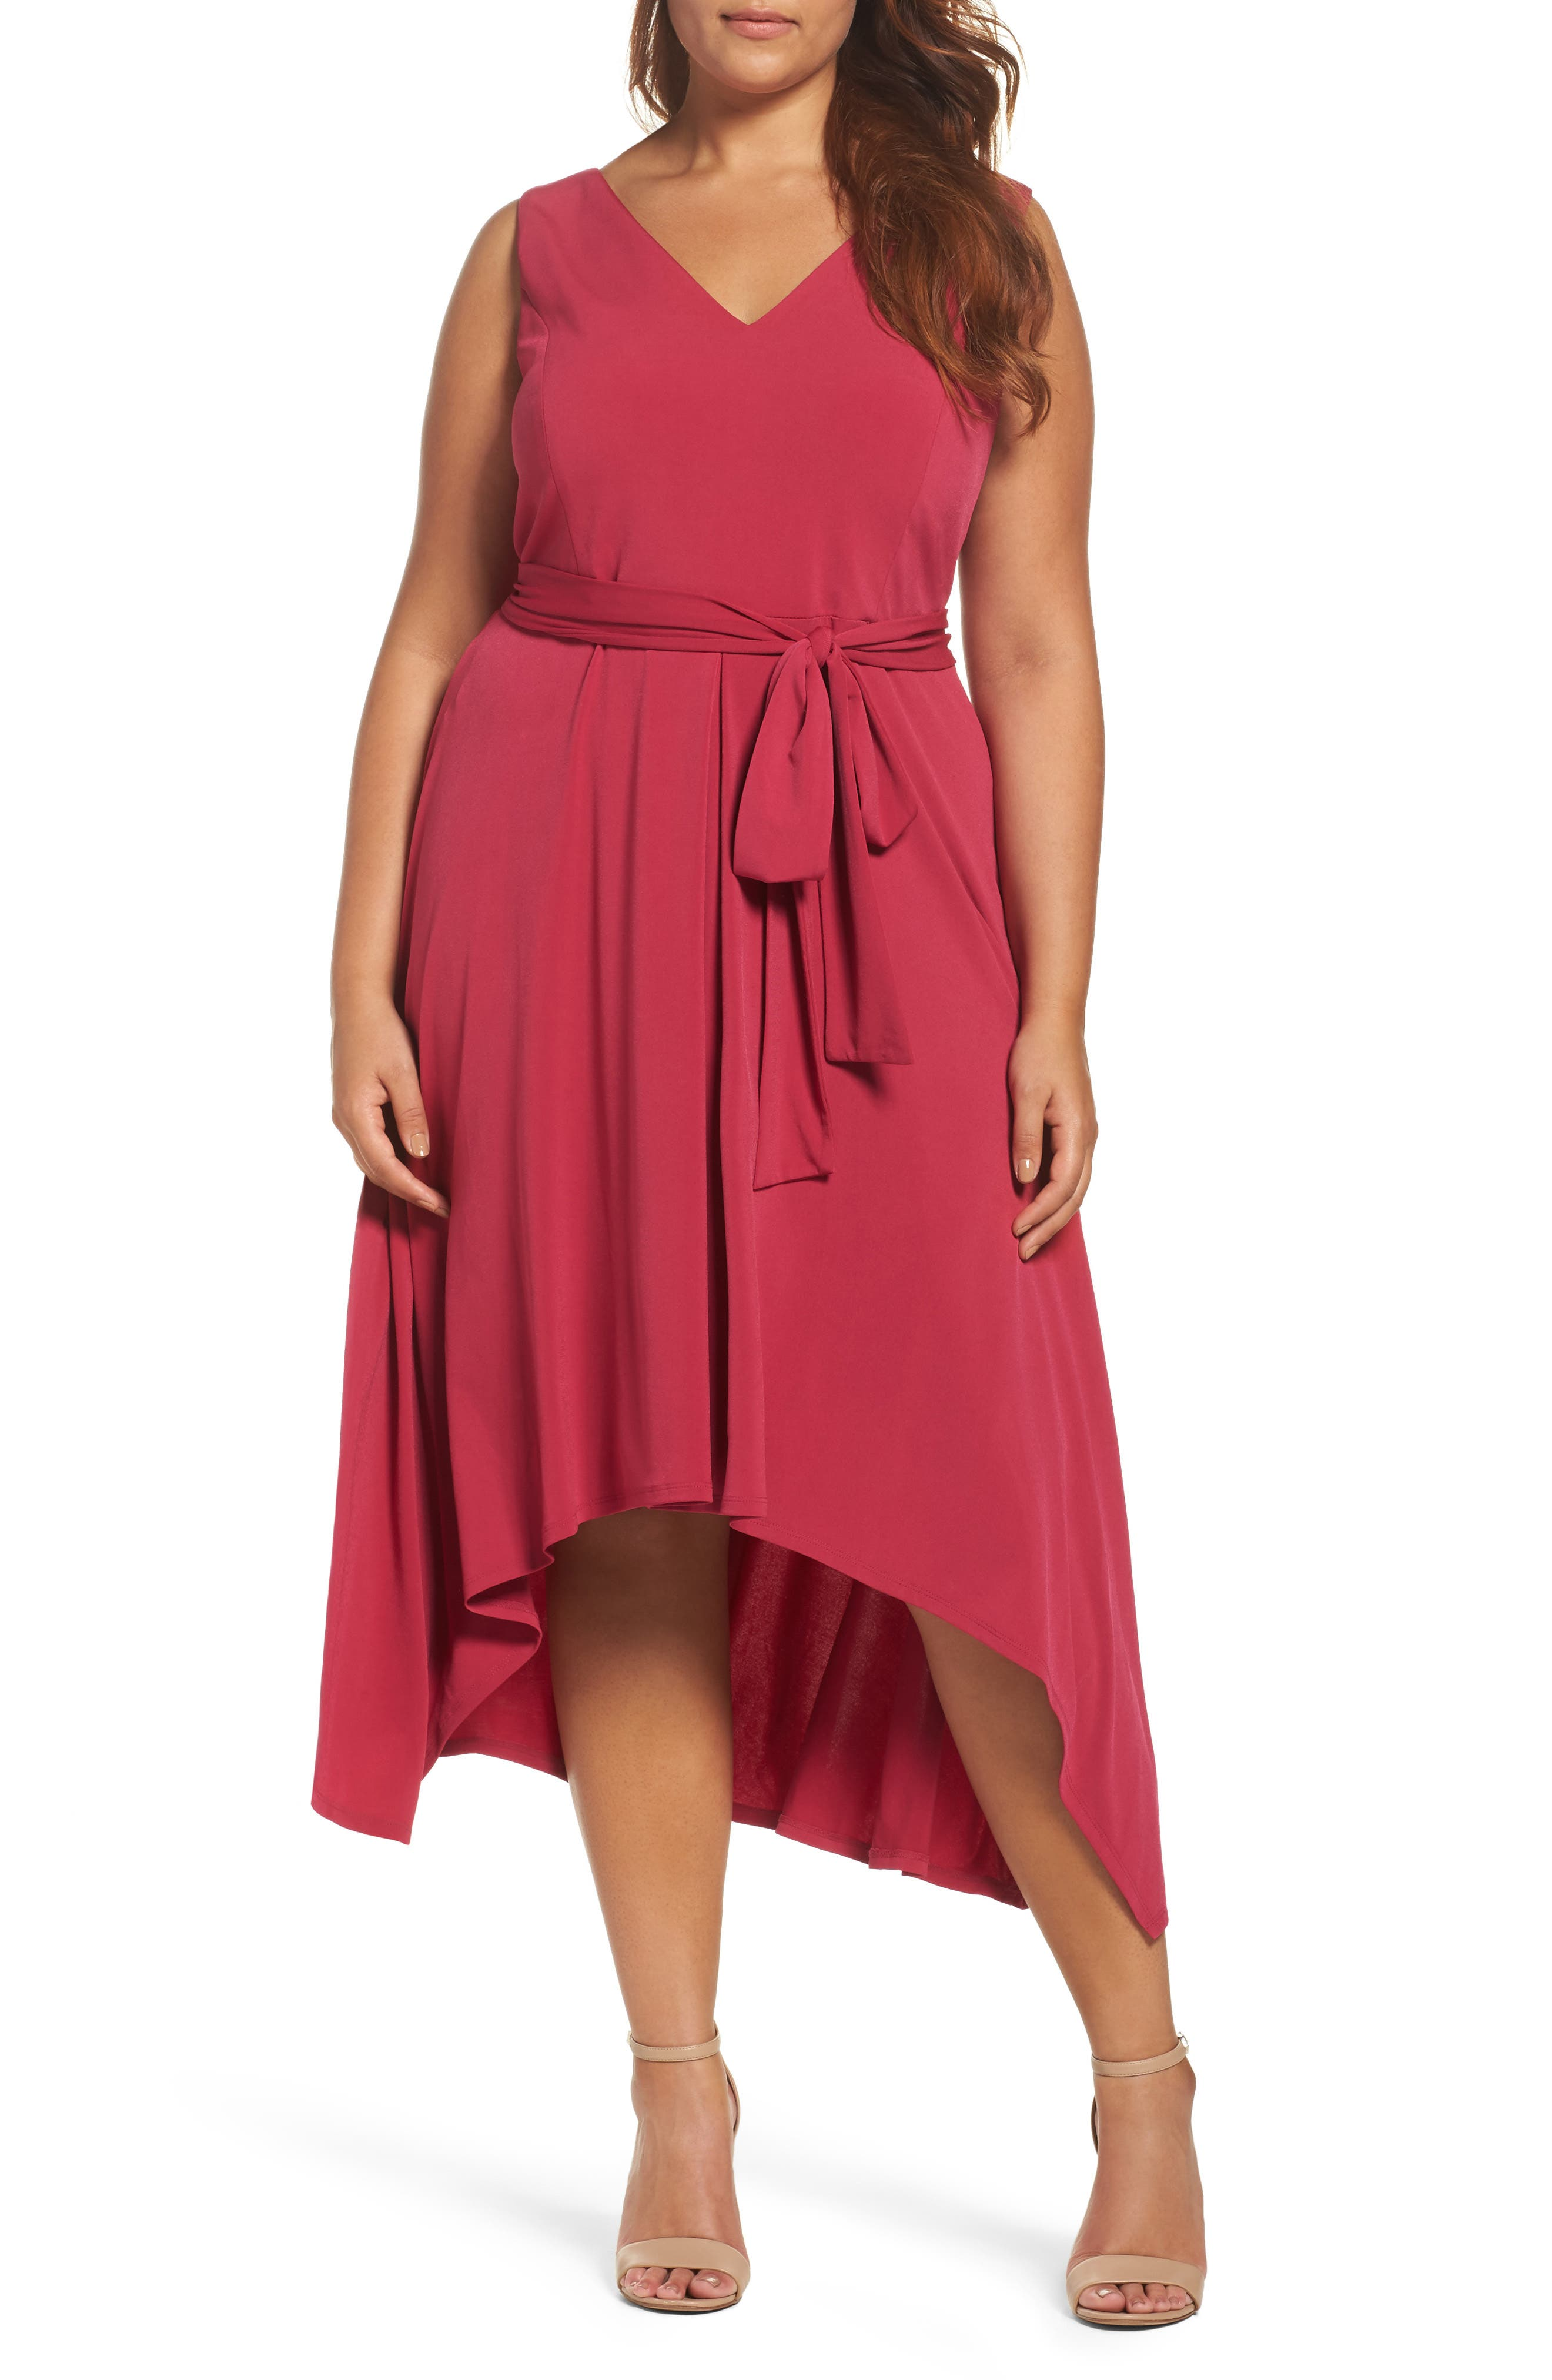 Vince Camuto Asymmetrical Belted Dress (Plus Size)